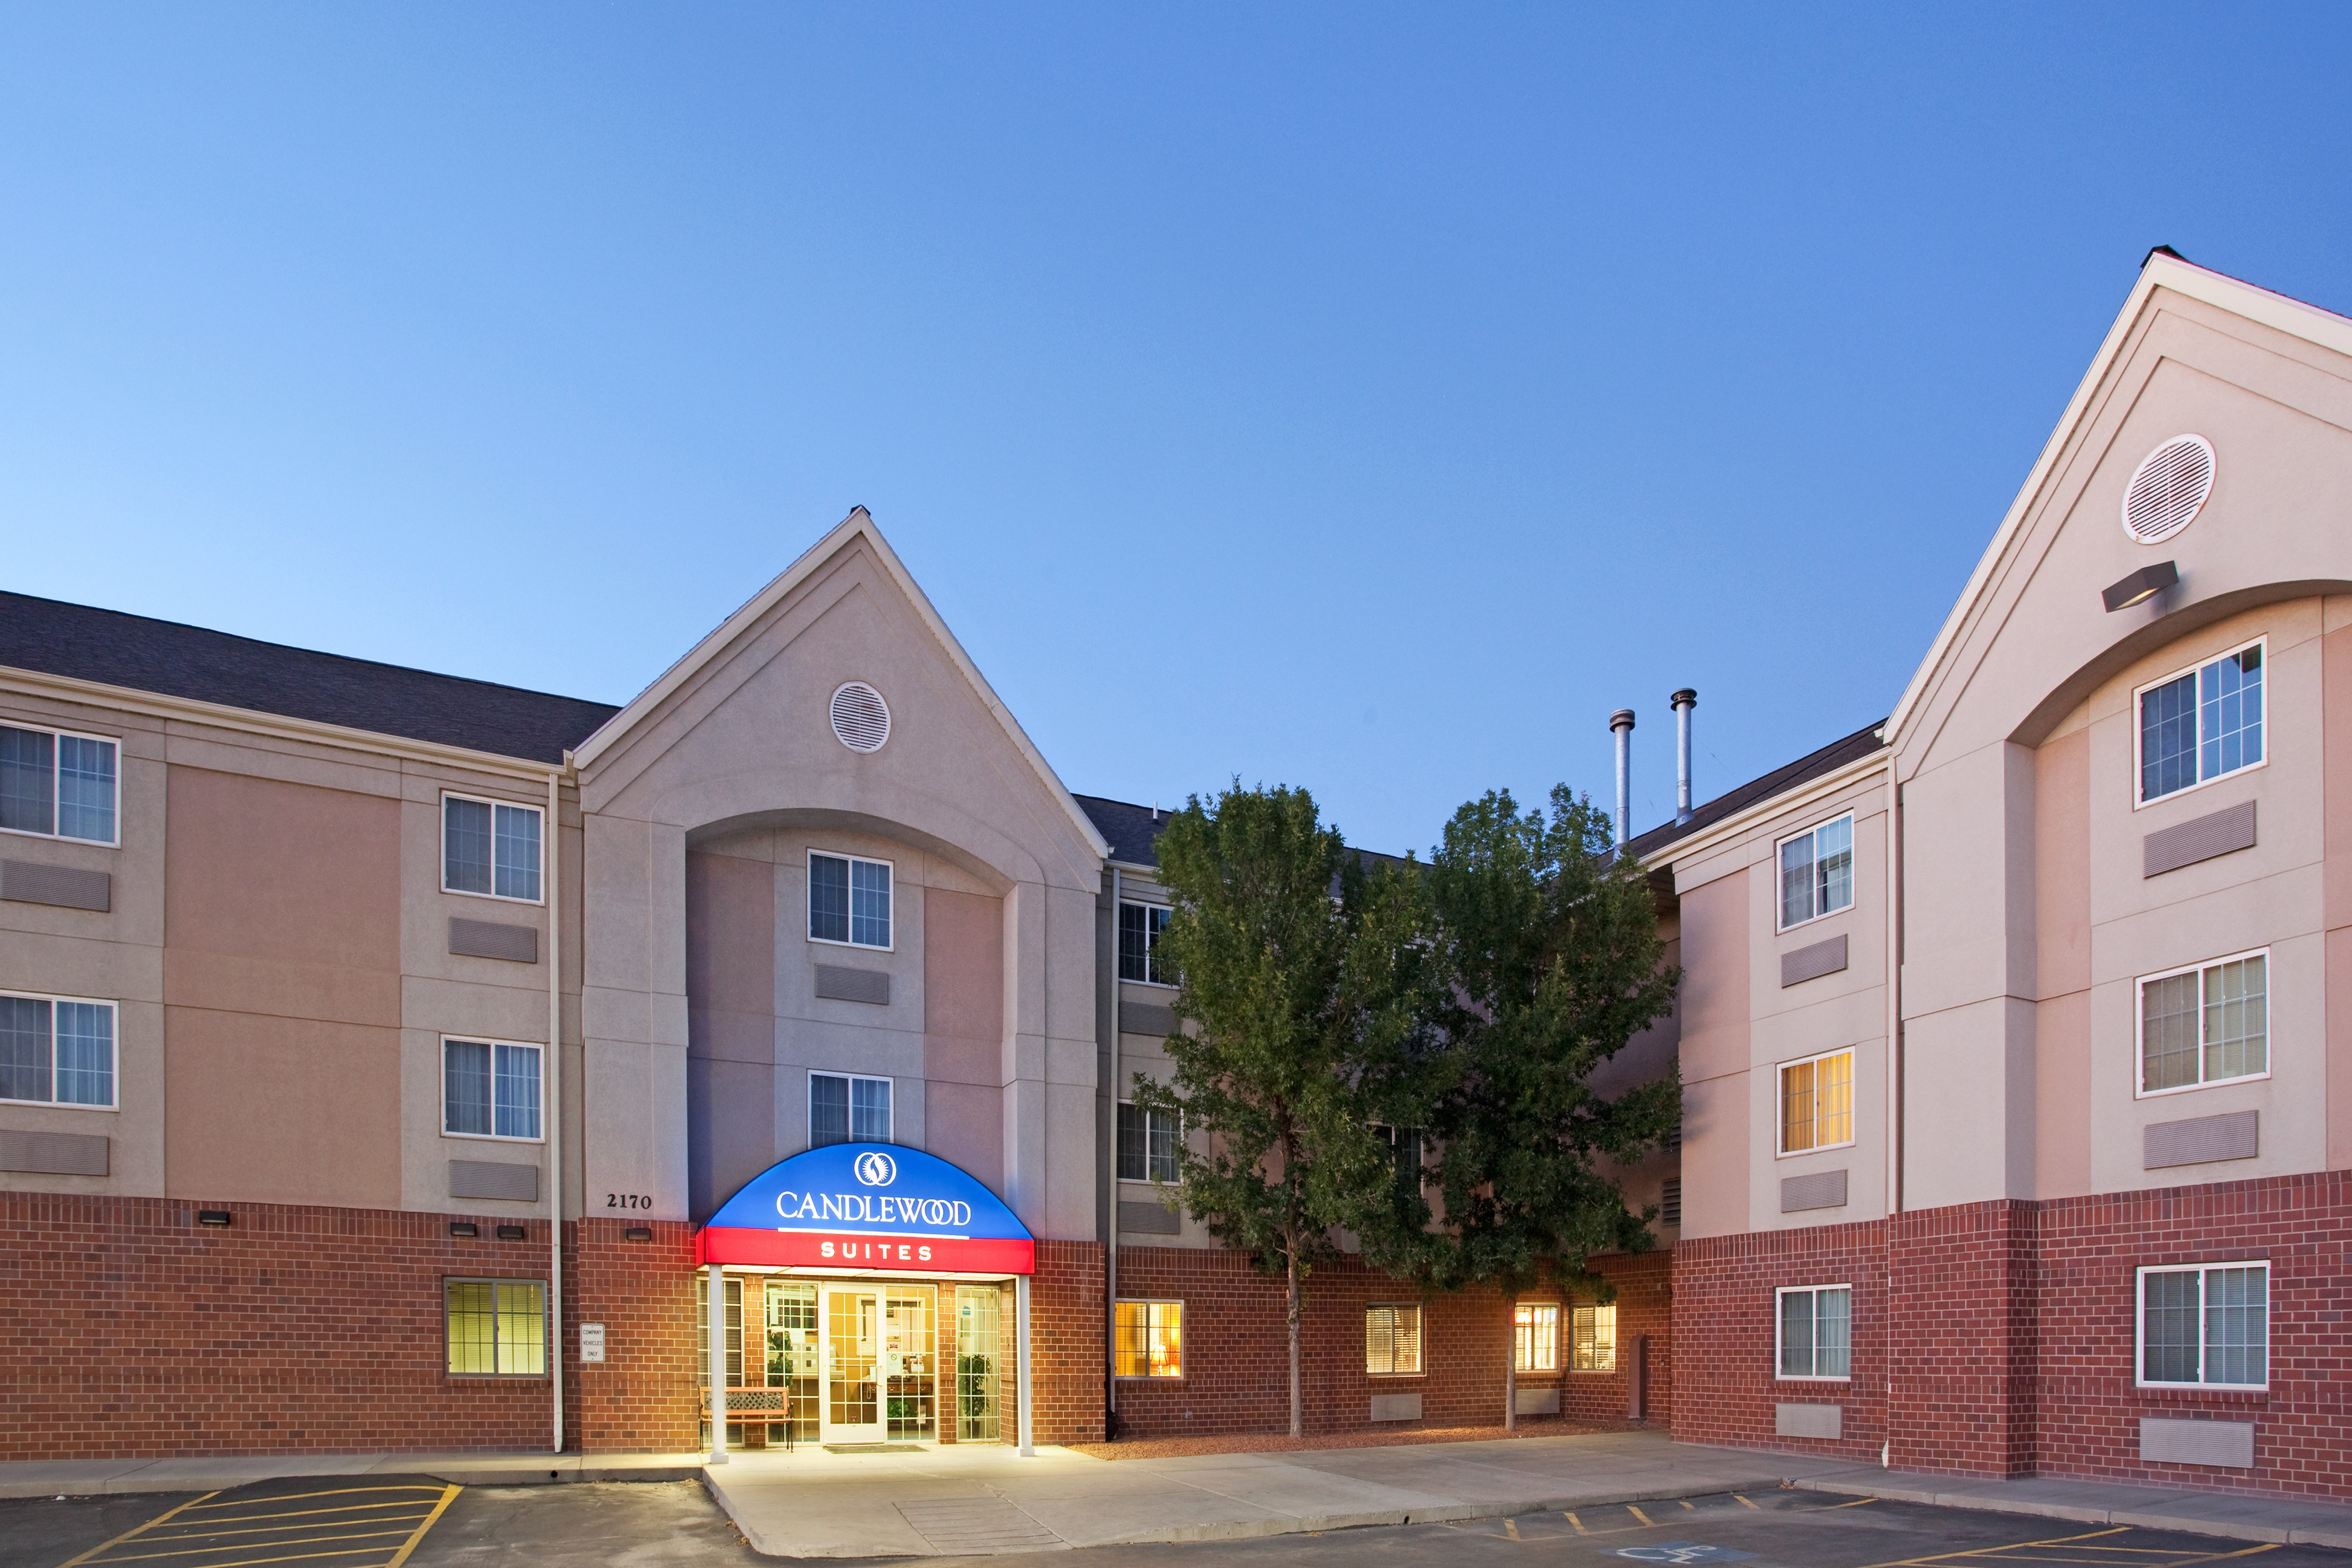 Candlewood Suites Airport